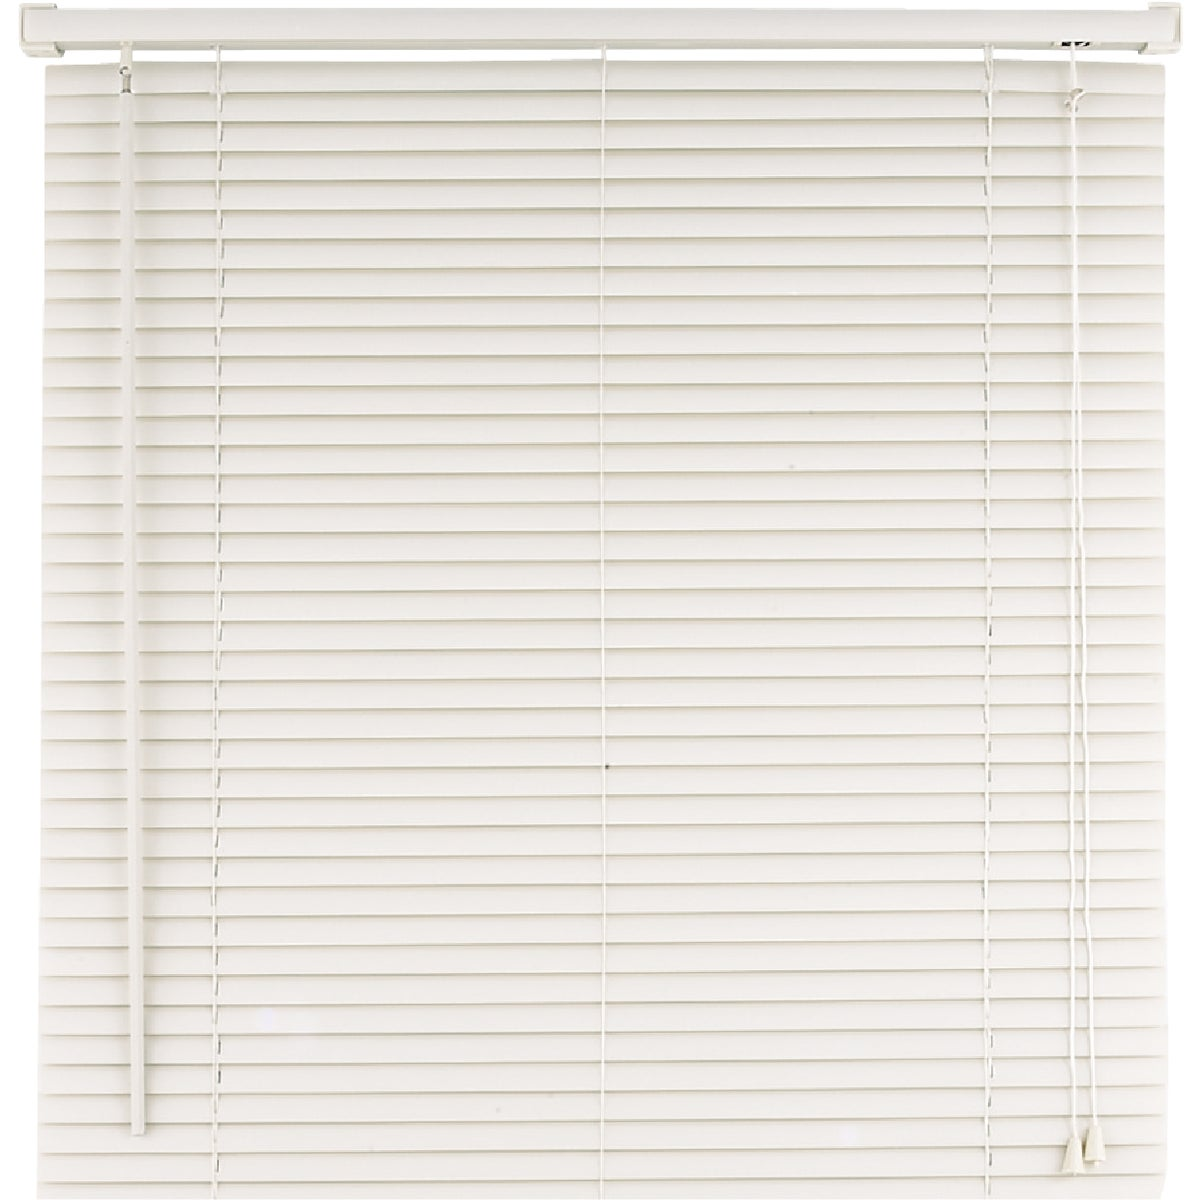 70X64 WHITE BLIND - 7064W by Lotus Wind Incom